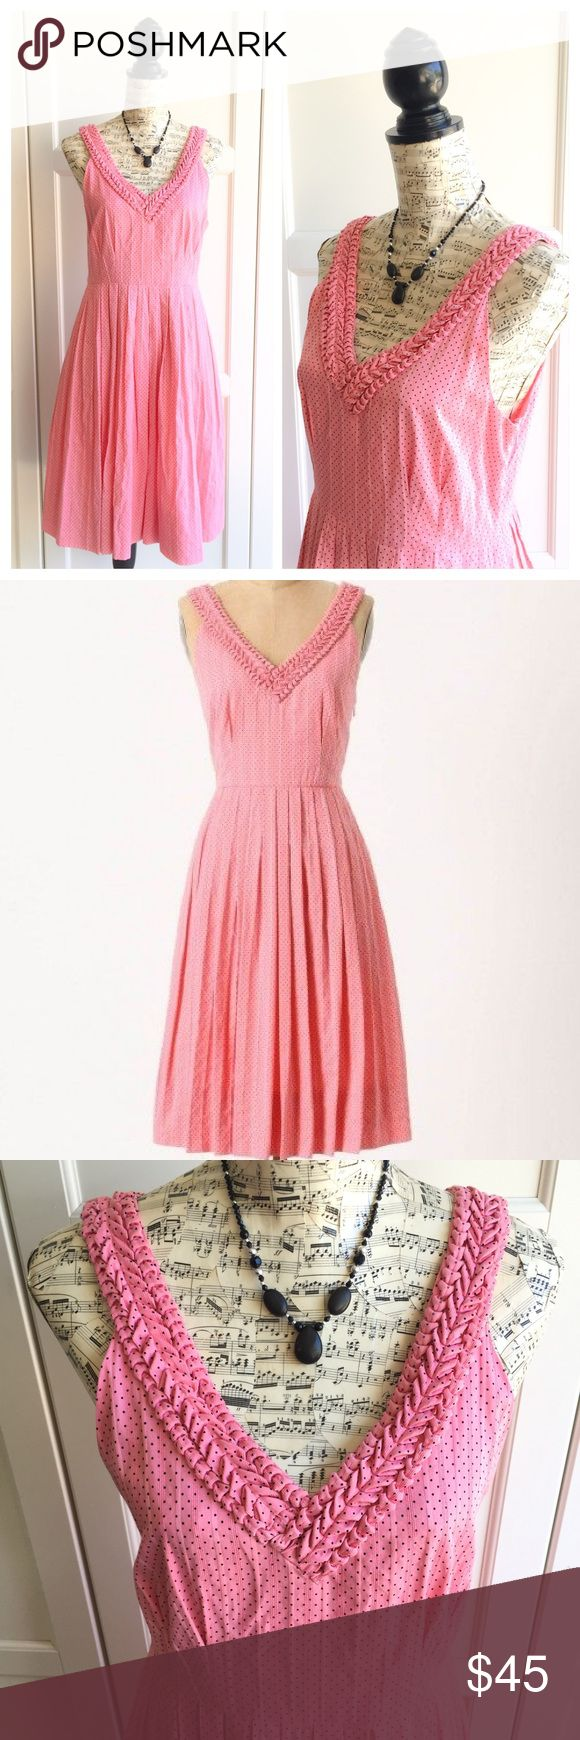 Anthropologie Pink Melon Ball Dress Melon ball dress by Moulinette Soeurs for Anthropologie. Size 6. Pink dress with tiny black polka dots throughout. Hidden side pockets! Anthropologie Dresses